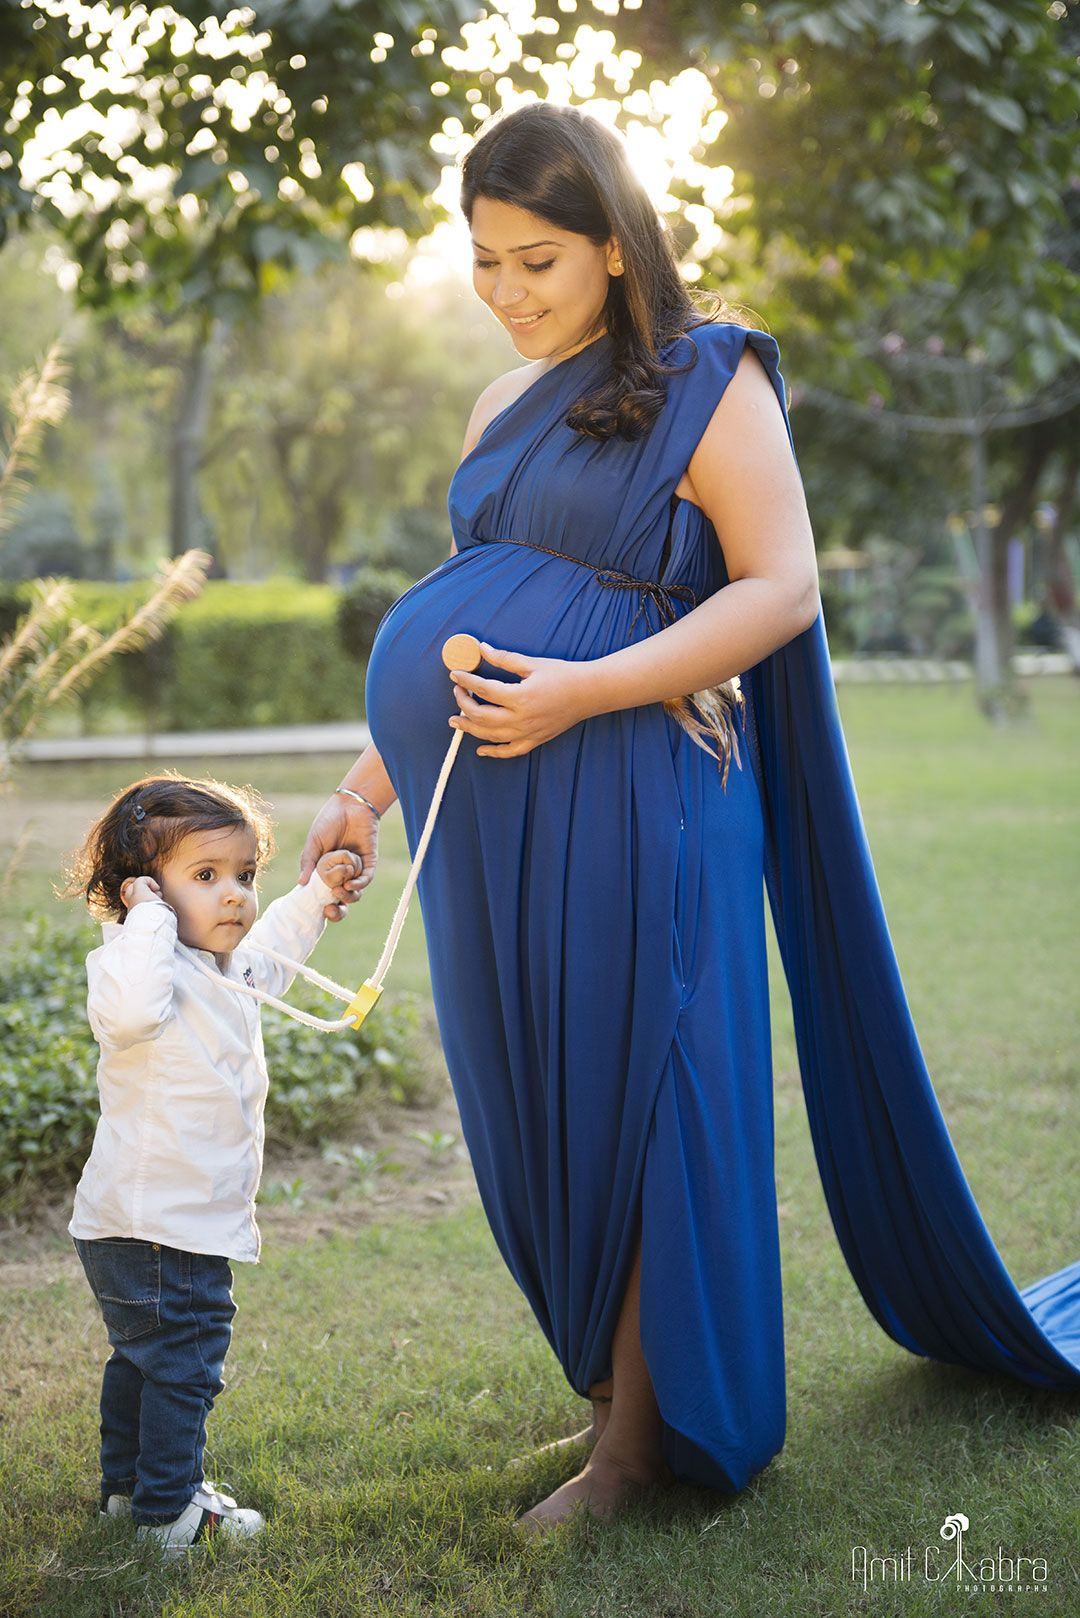 Maternity & Pregnancy Photo Shoot Packages at best prices